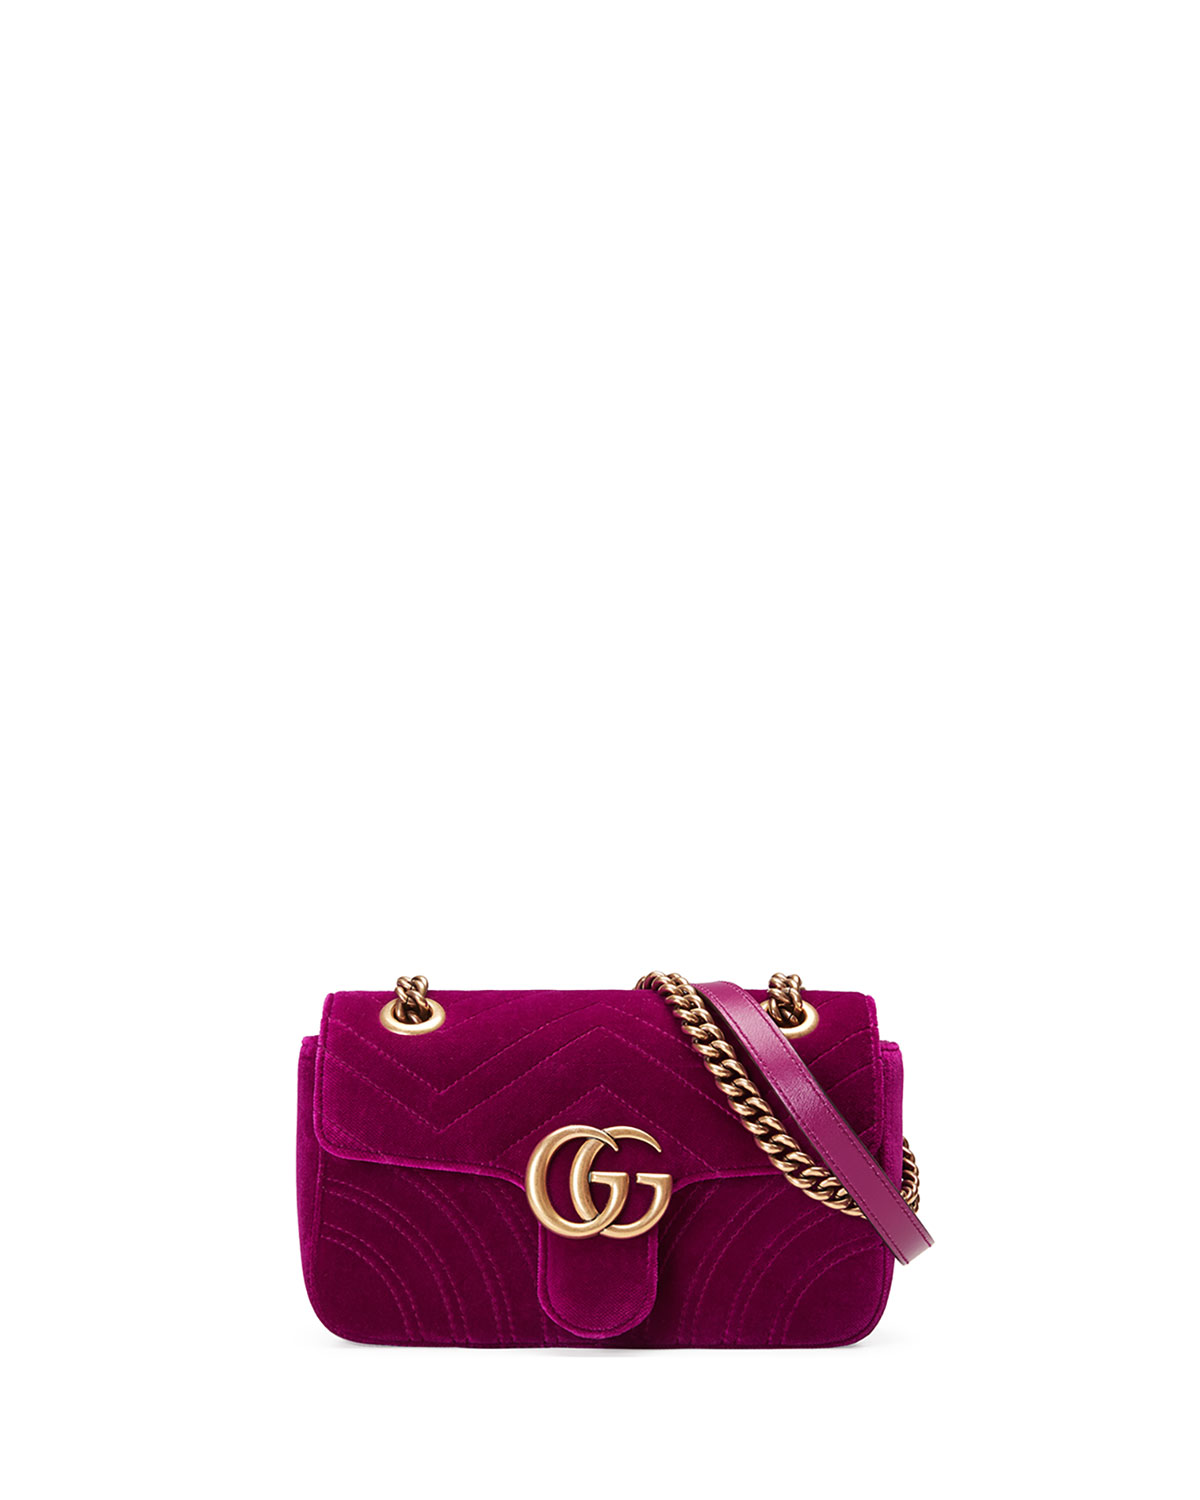 22cde4cf248e Gucci GG Marmont Mini Quilted Velvet Crossbody Bag, Dark Fuchsia ...